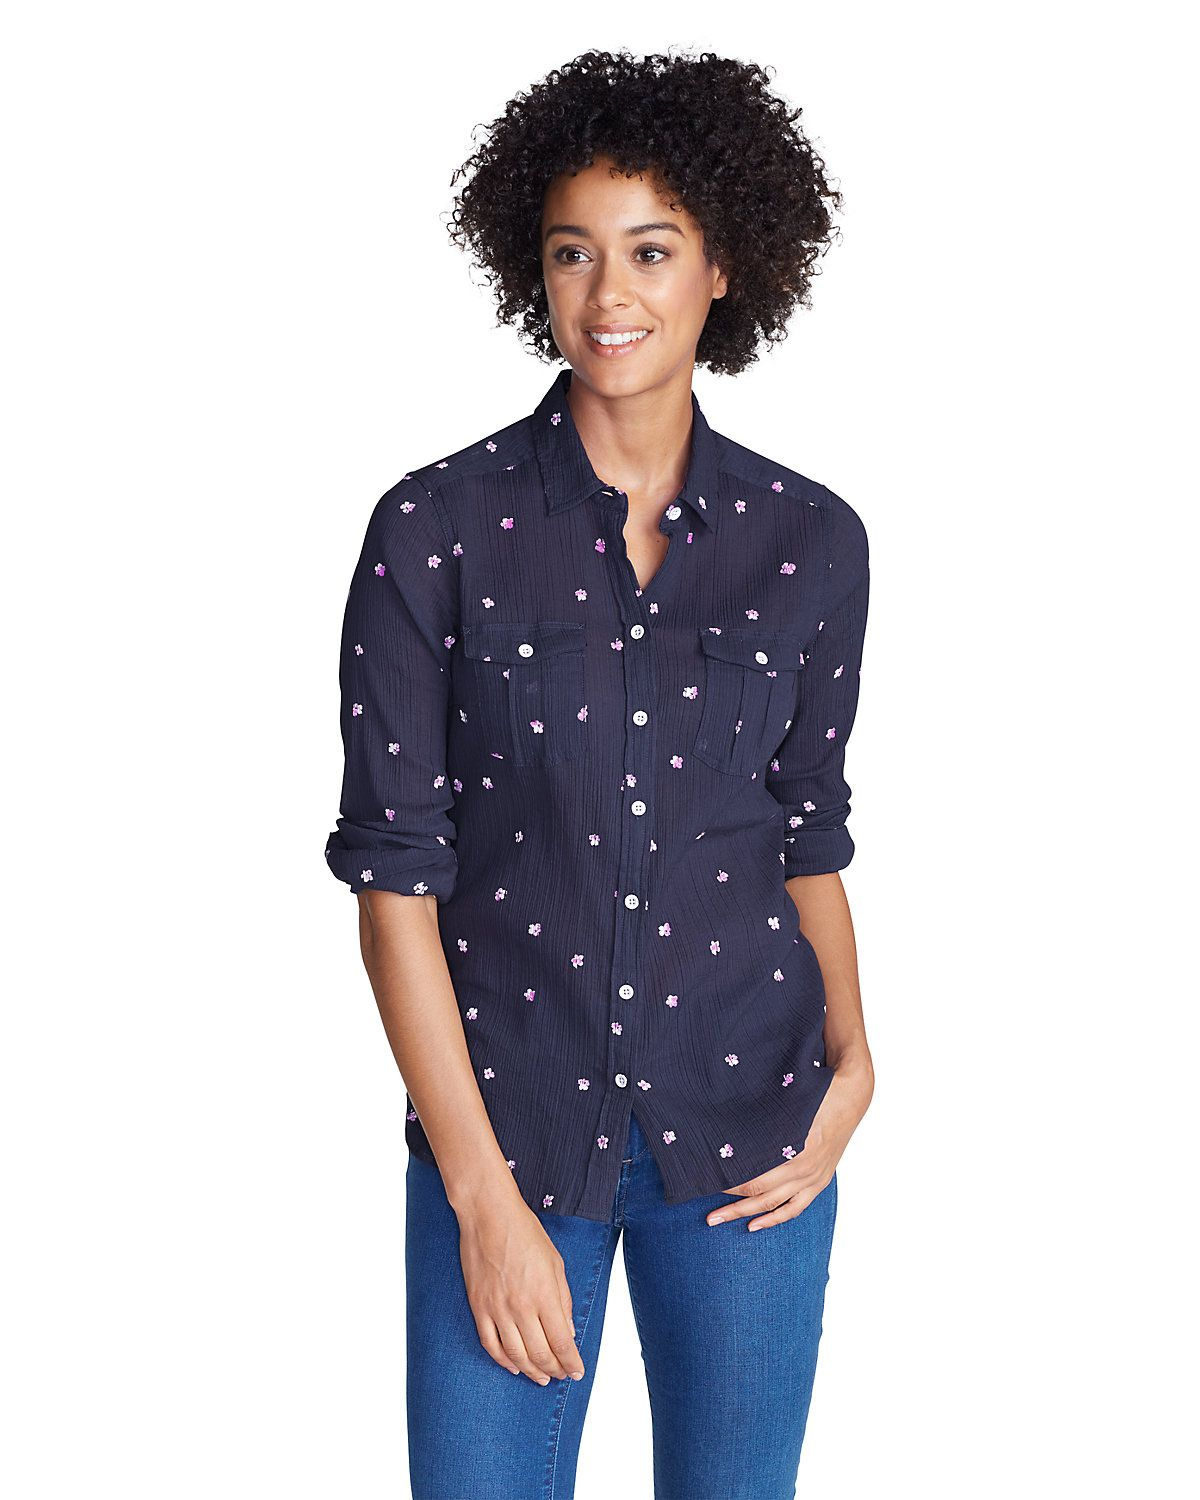 Women's Packable Shirt Print Eddie Bauer (With images